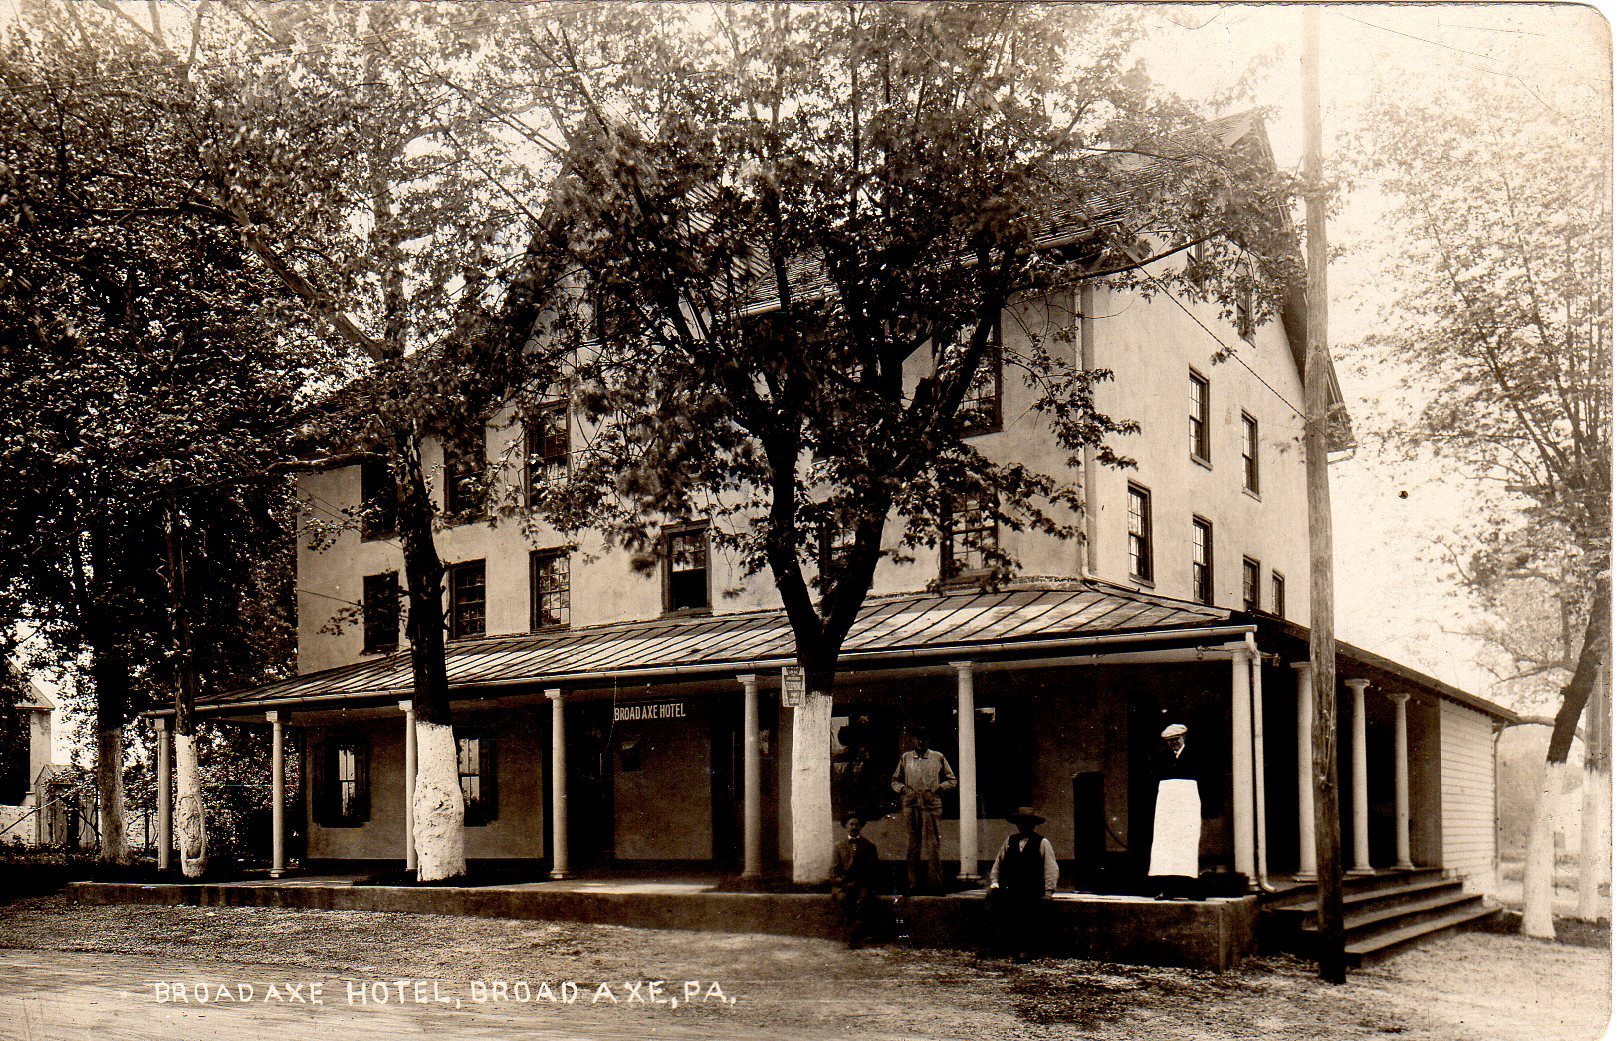 Post Card Collection (E Simon)_2682_67_Broad Axe Hotel, Broad Axe, Pa_23 May 1913